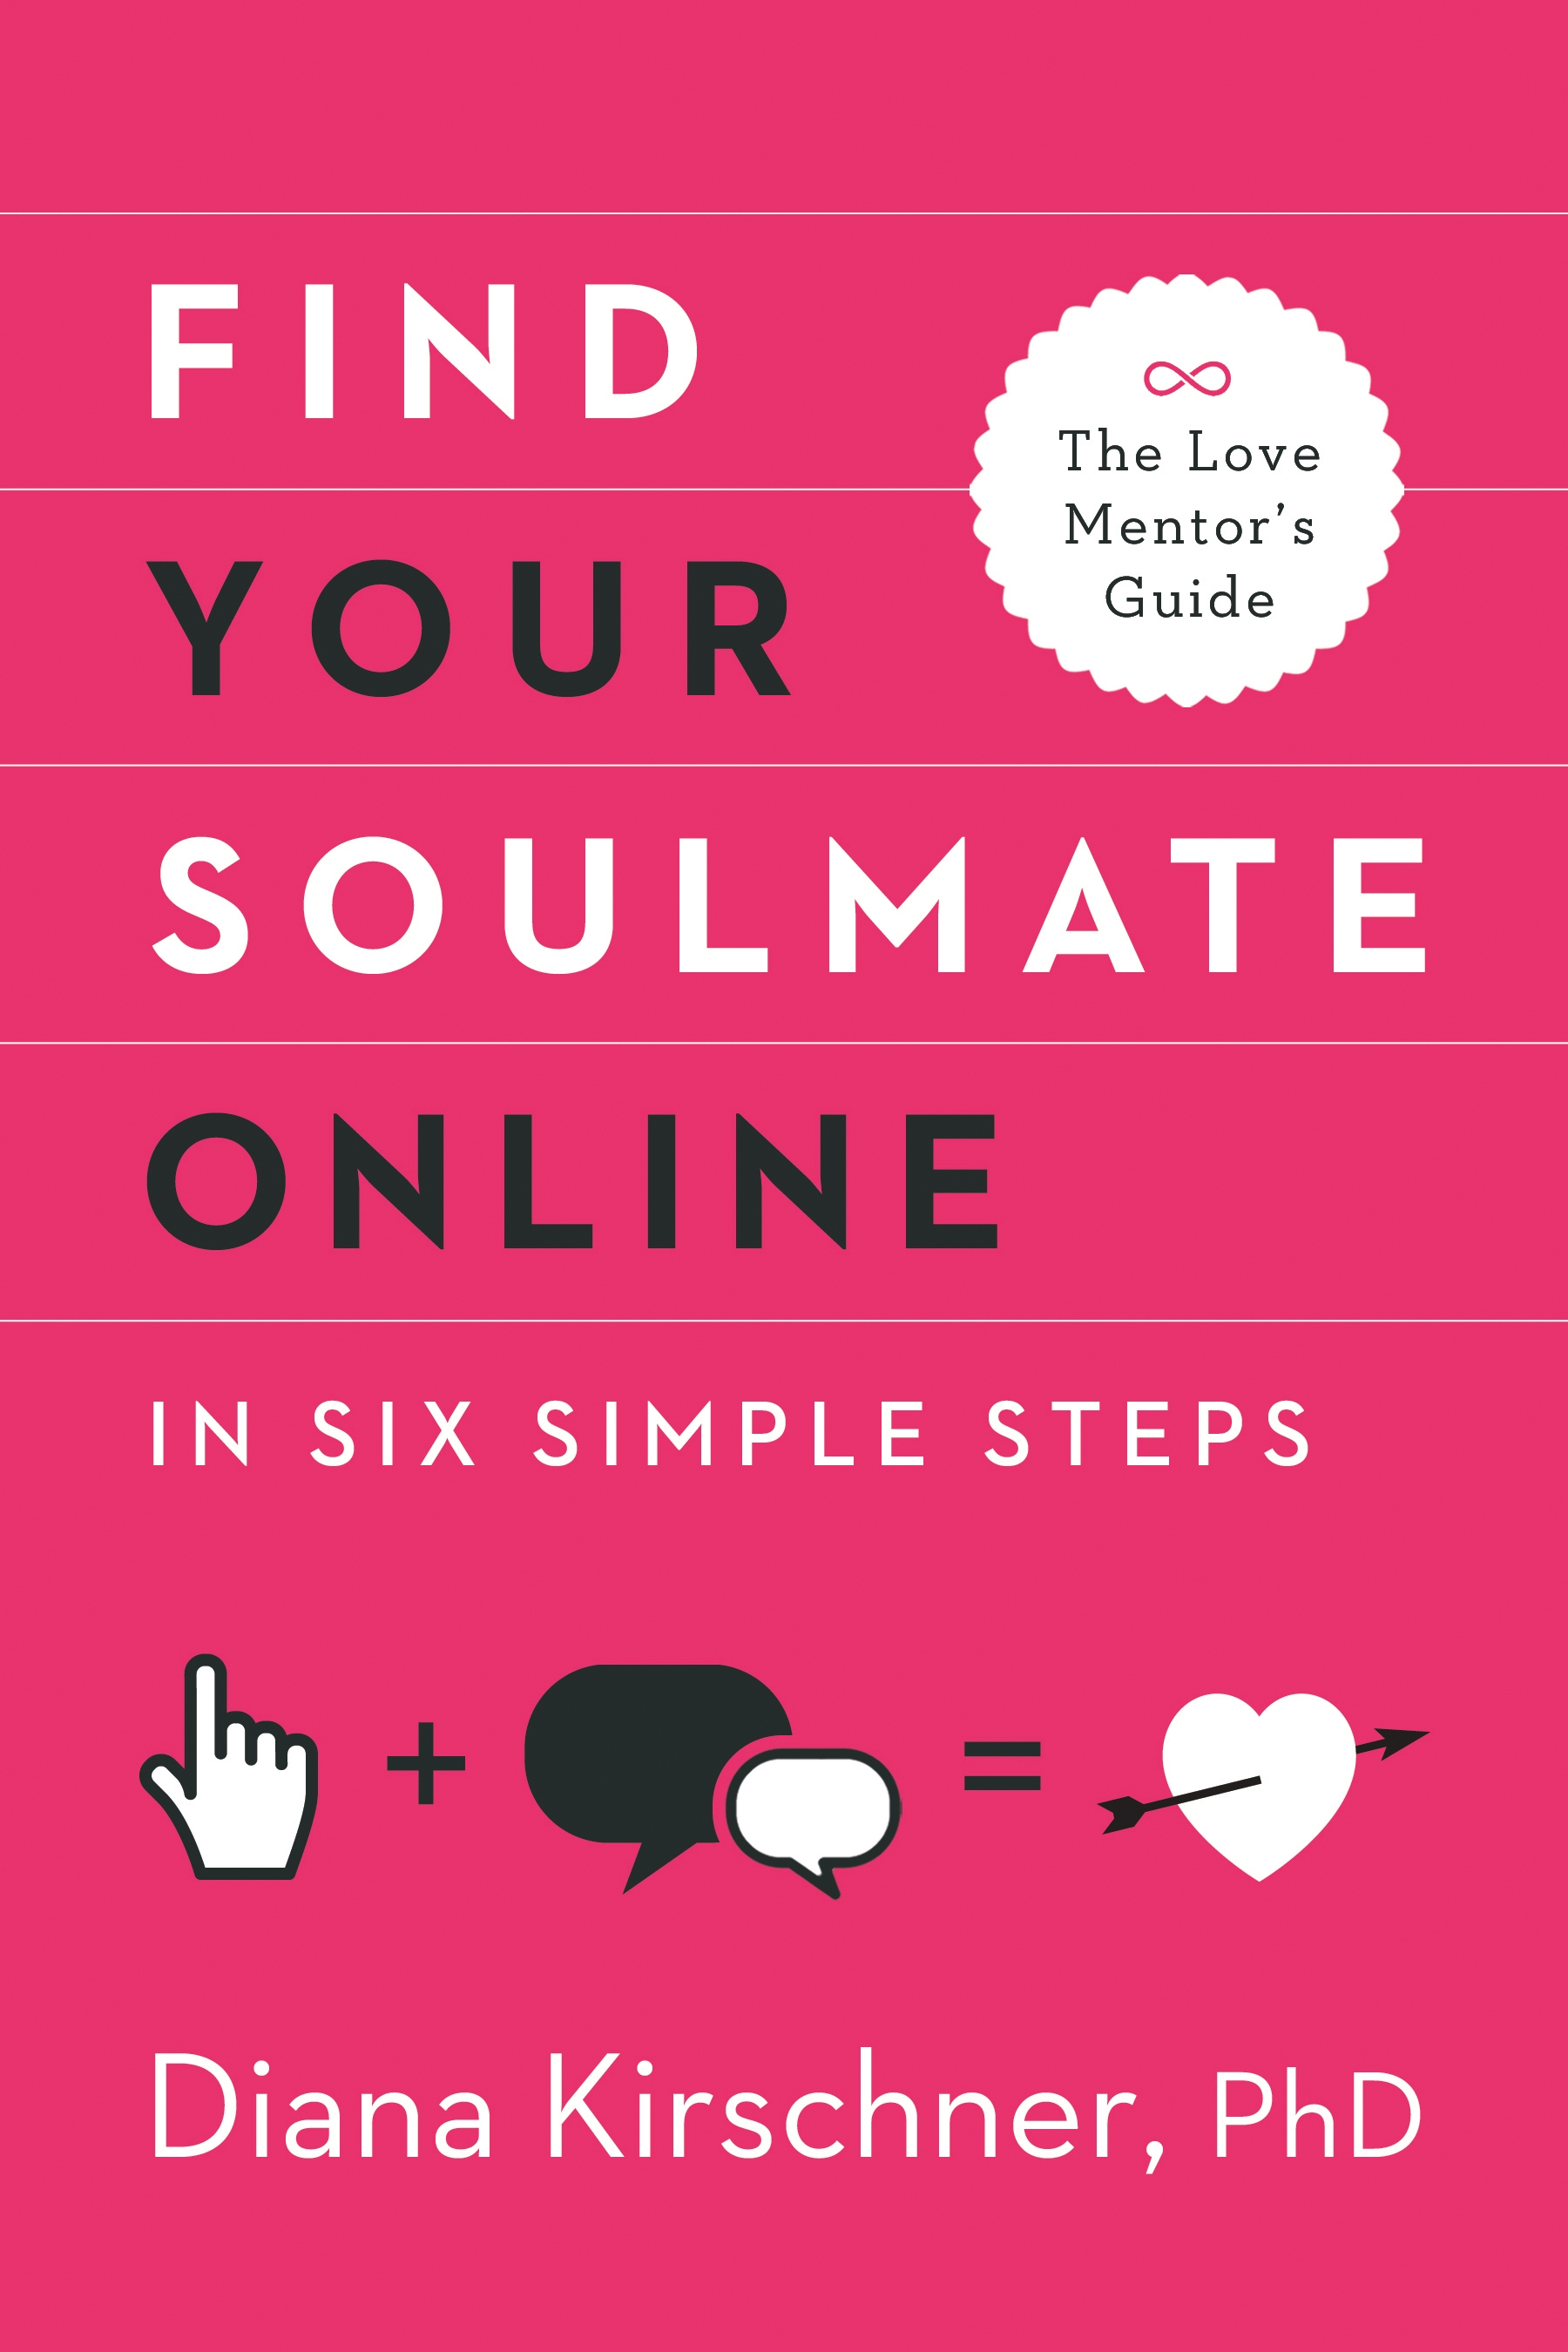 find your soulmate online in 6 simple steps